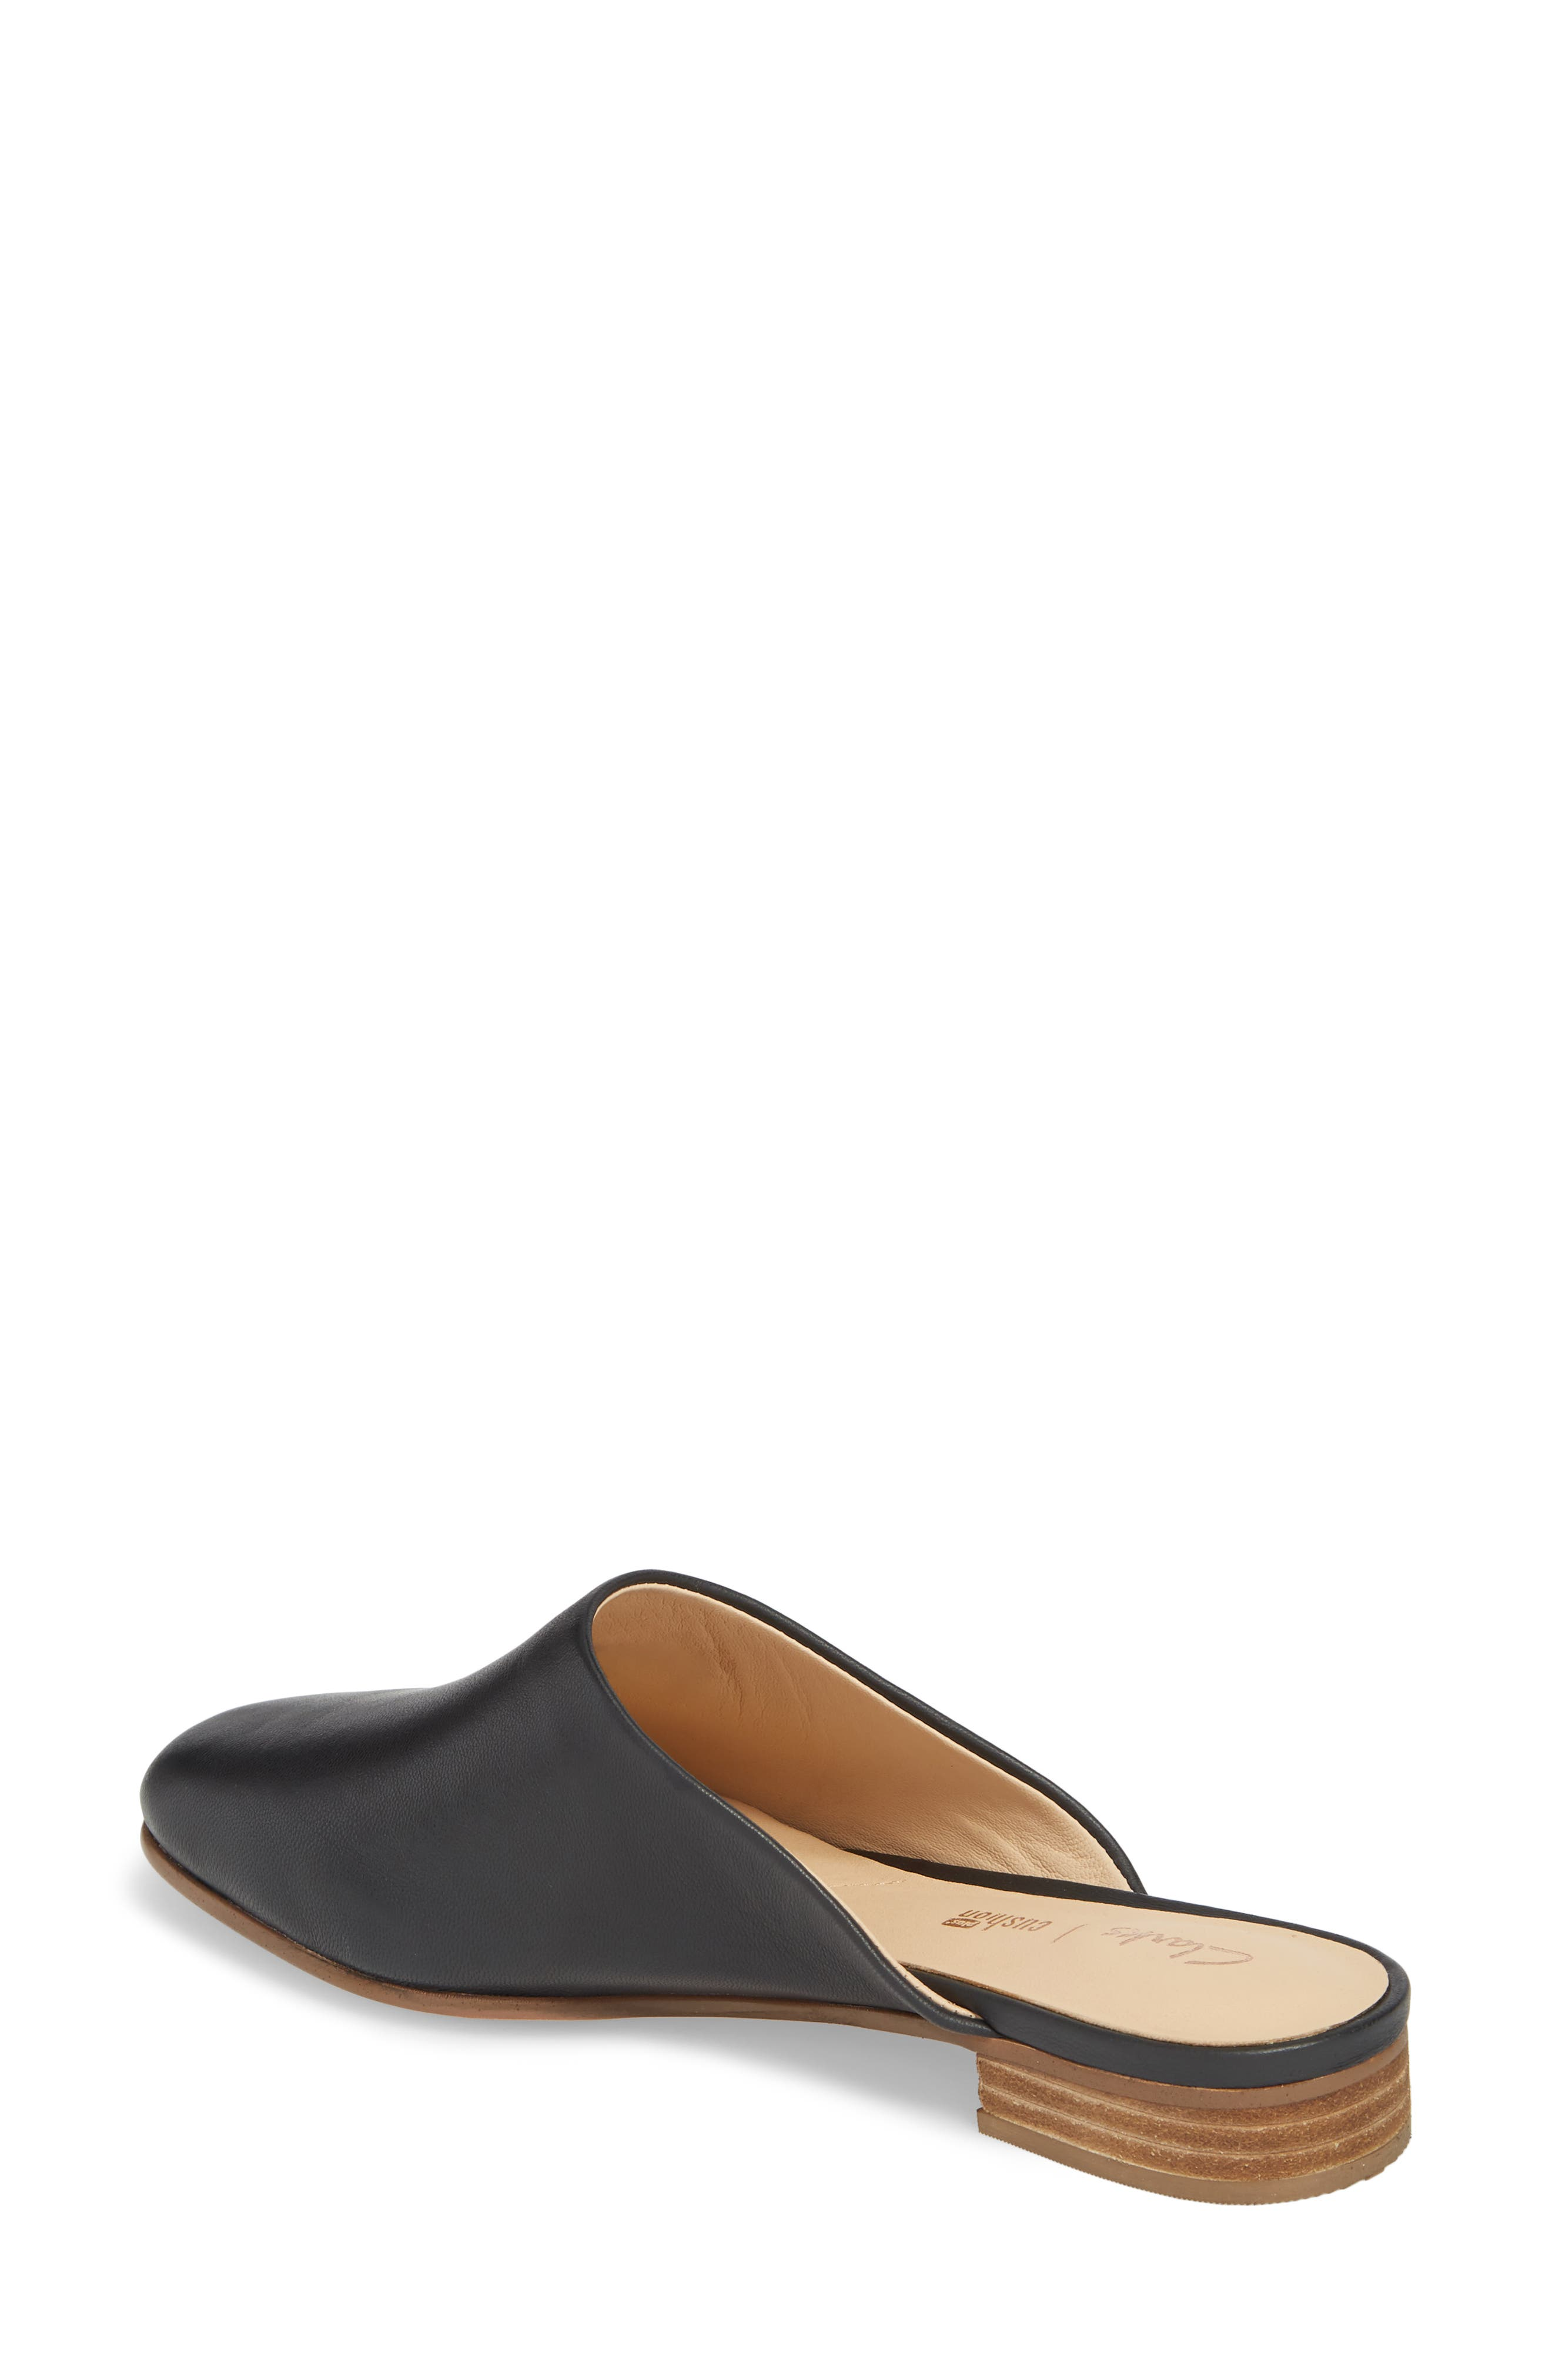 CLARKS<SUP>®</SUP>, Pure Blush Mule, Alternate thumbnail 2, color, BLACK LEATHER